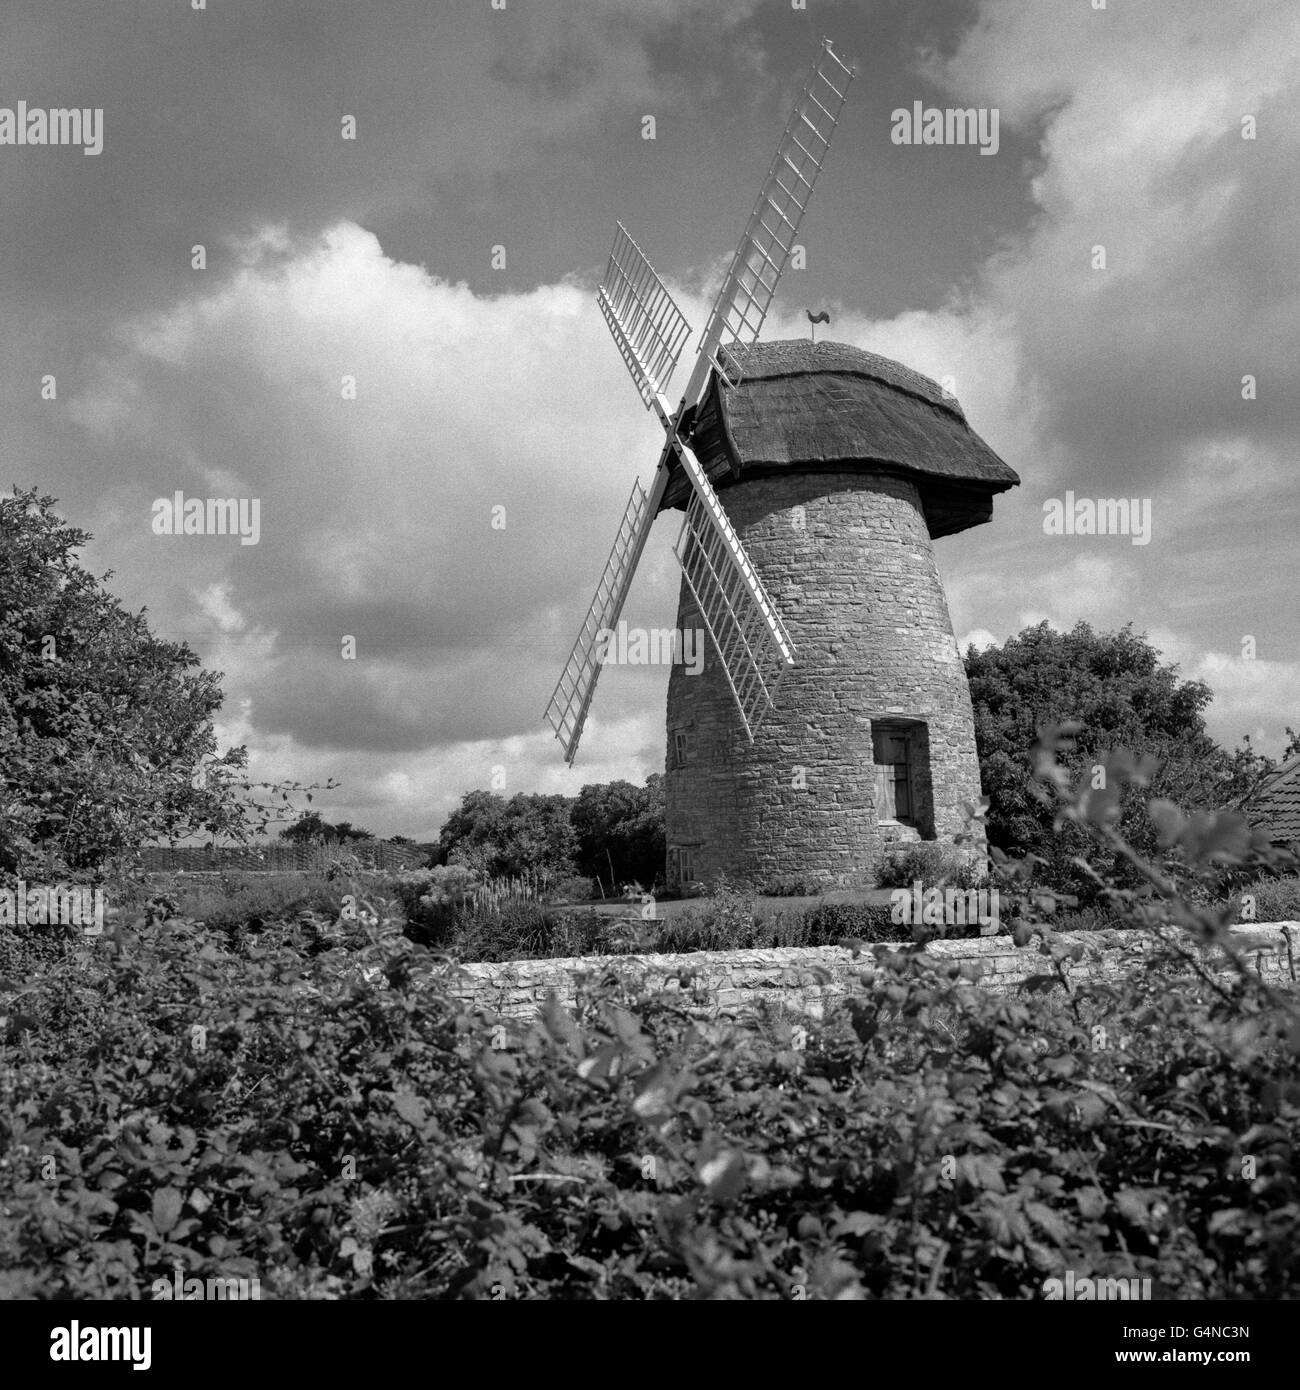 Buildings and Landmarks - Windmills - High Ham - Stock Image